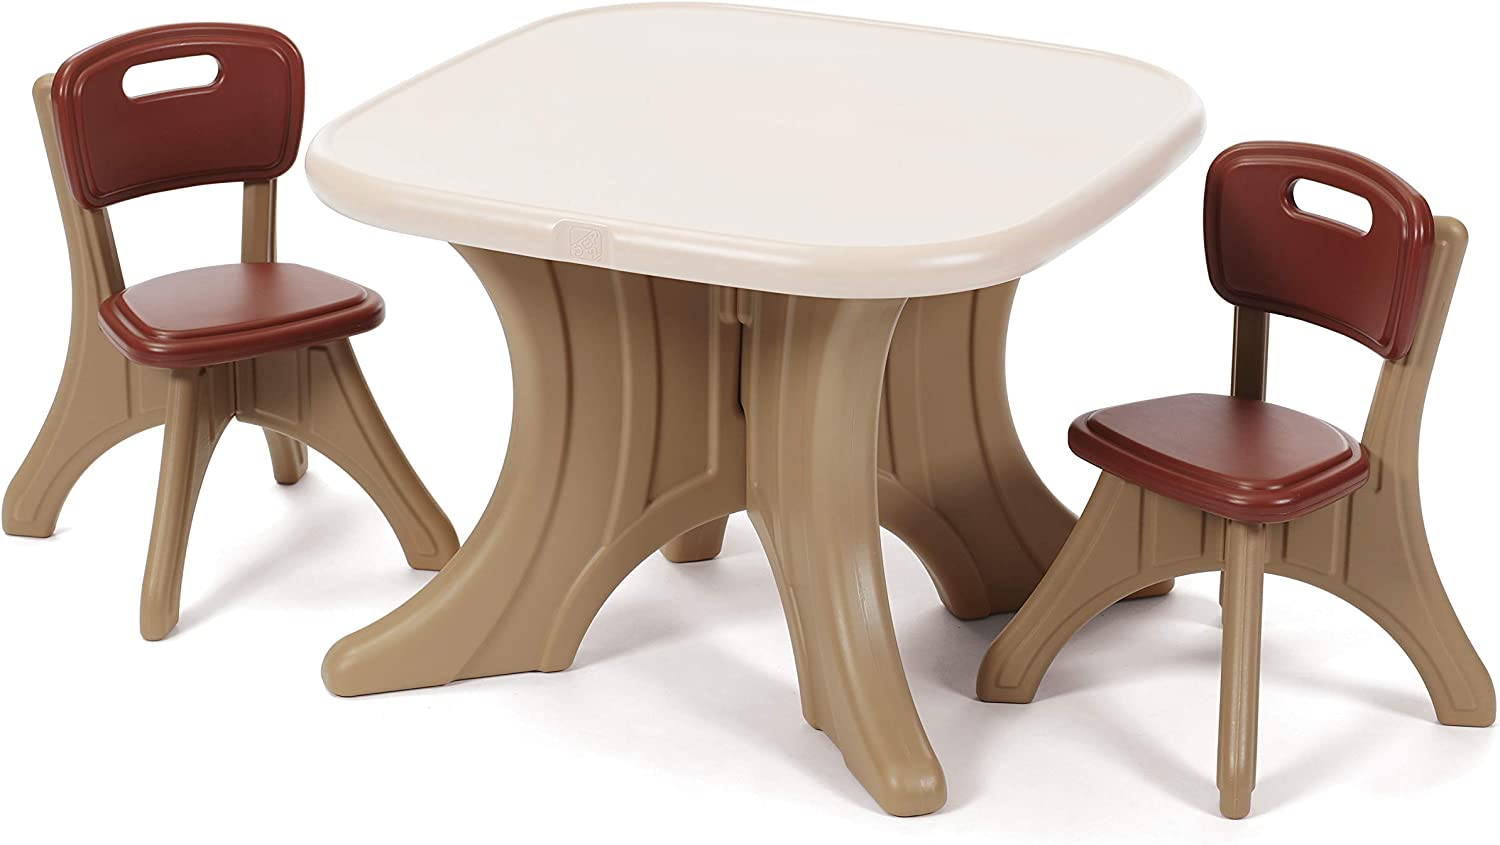 Step9 Traditions Table & Chairs Set